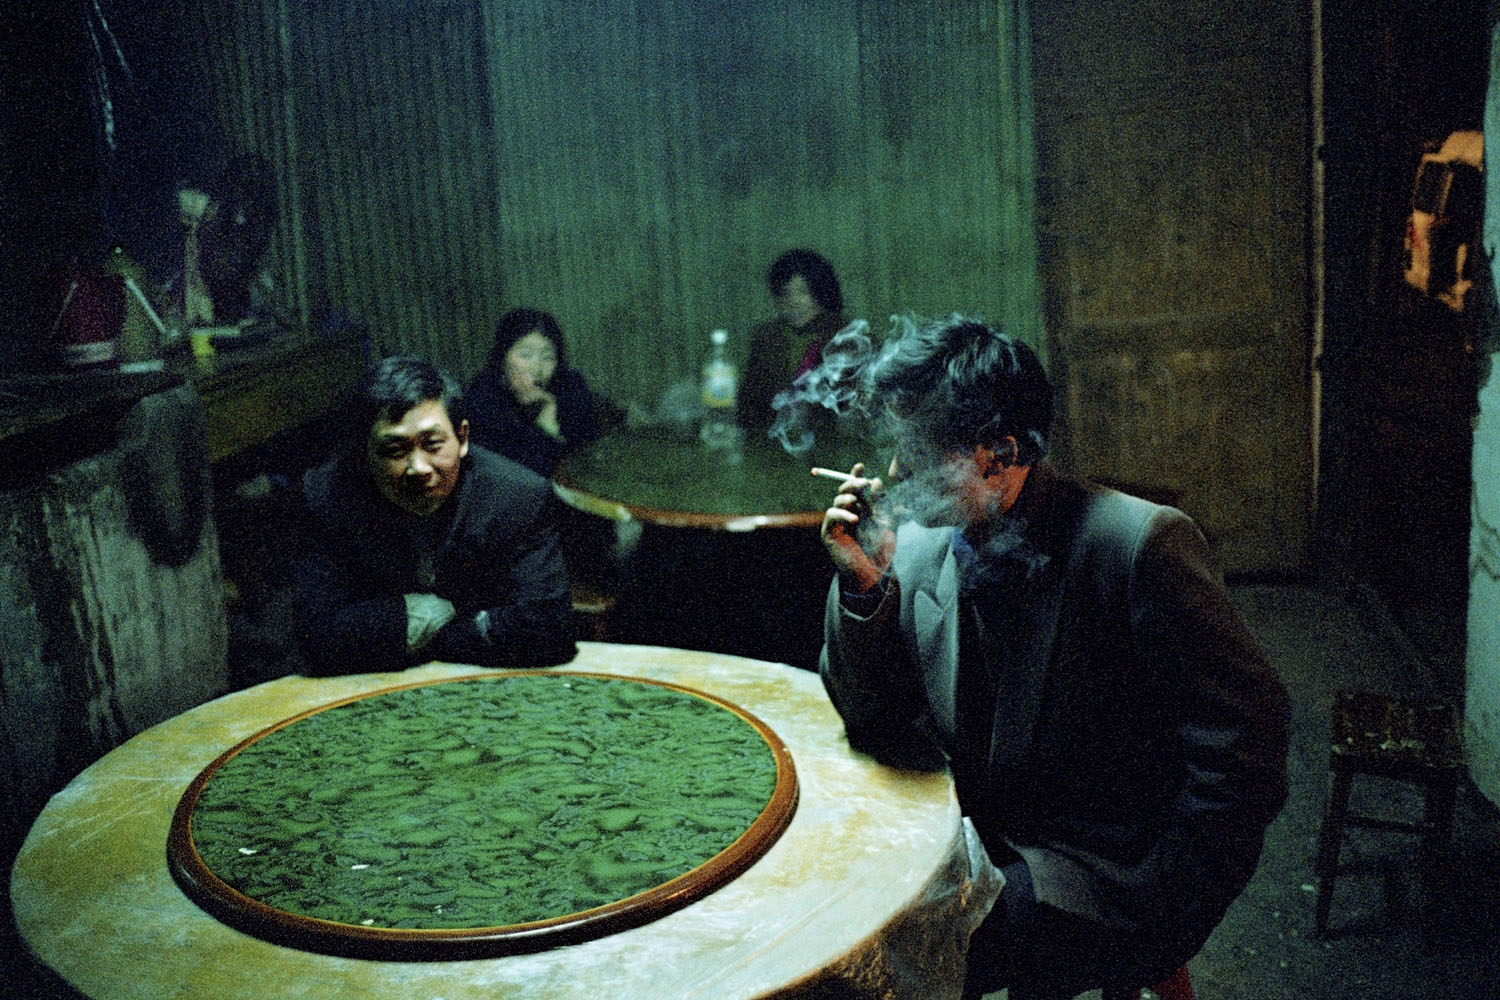 Locals sitting in a local eatery. They have not ordered food, but are instead using the space to rest, whilst outside buildings are being demolished. As the last inhabitants of the town move out, the business activity of these old towns ground to an inevitable halt. Badong, China.